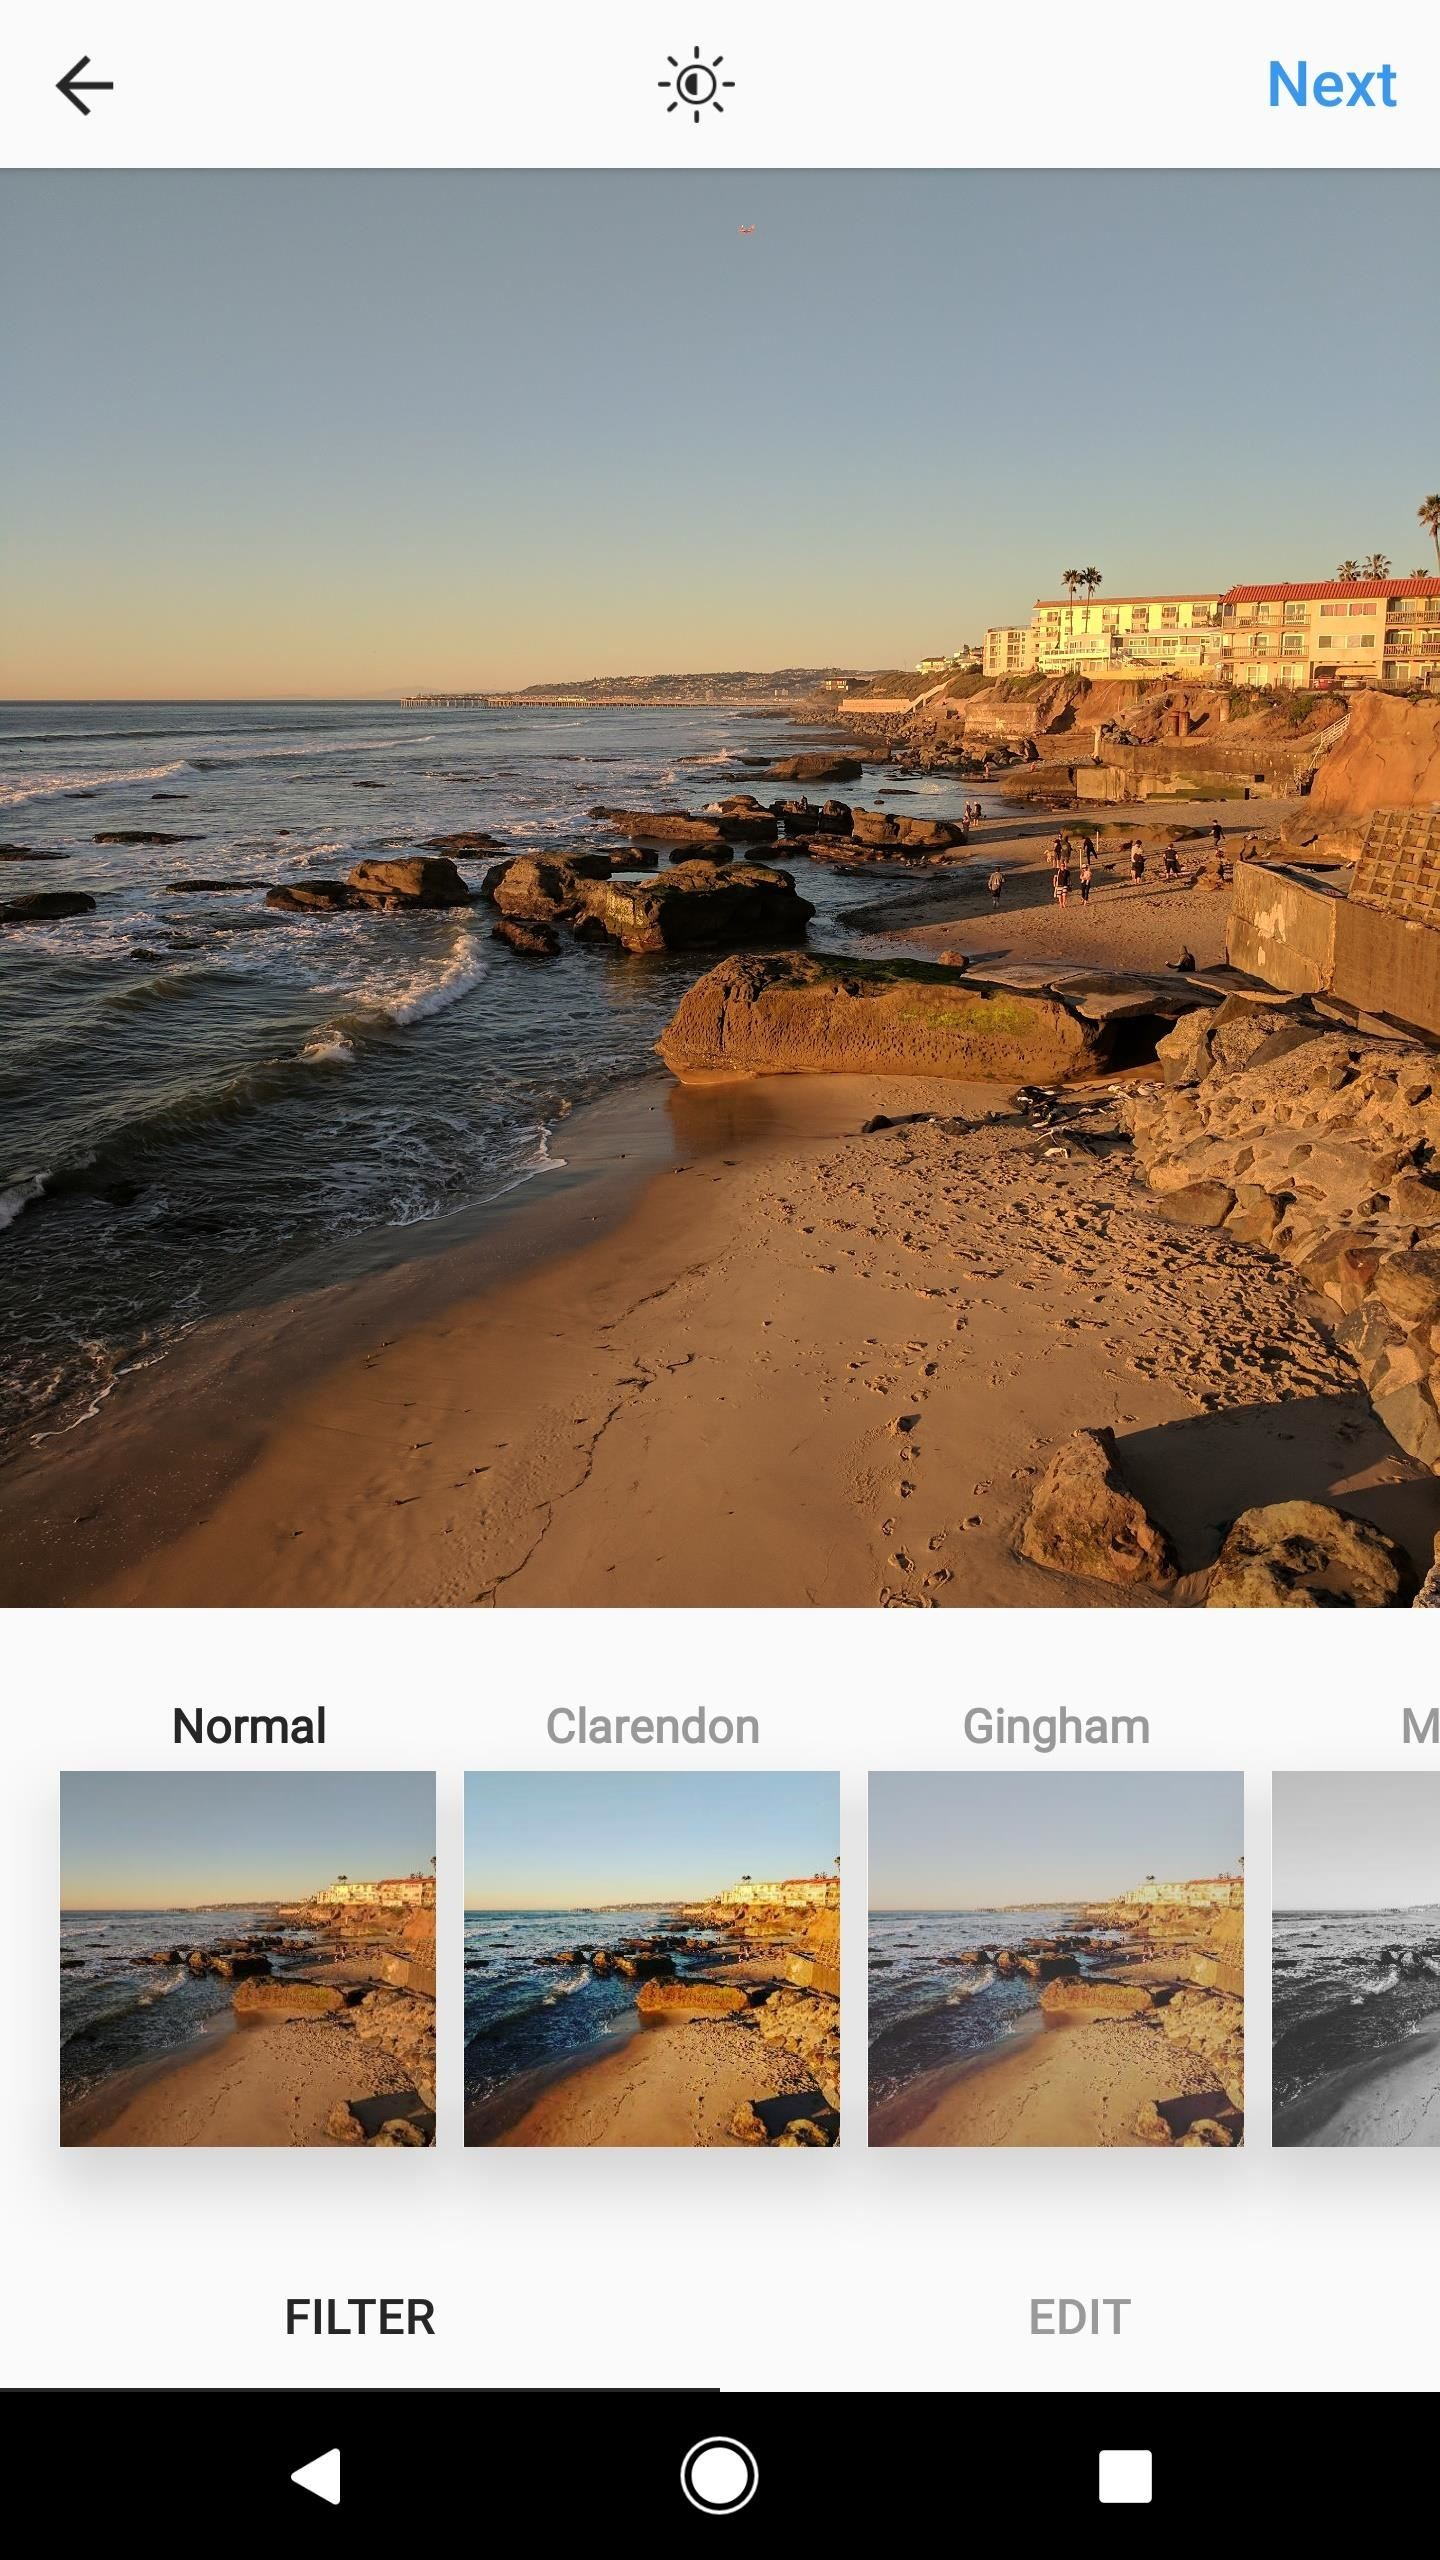 Google Docs Meets Instagram in Google's Next Social App